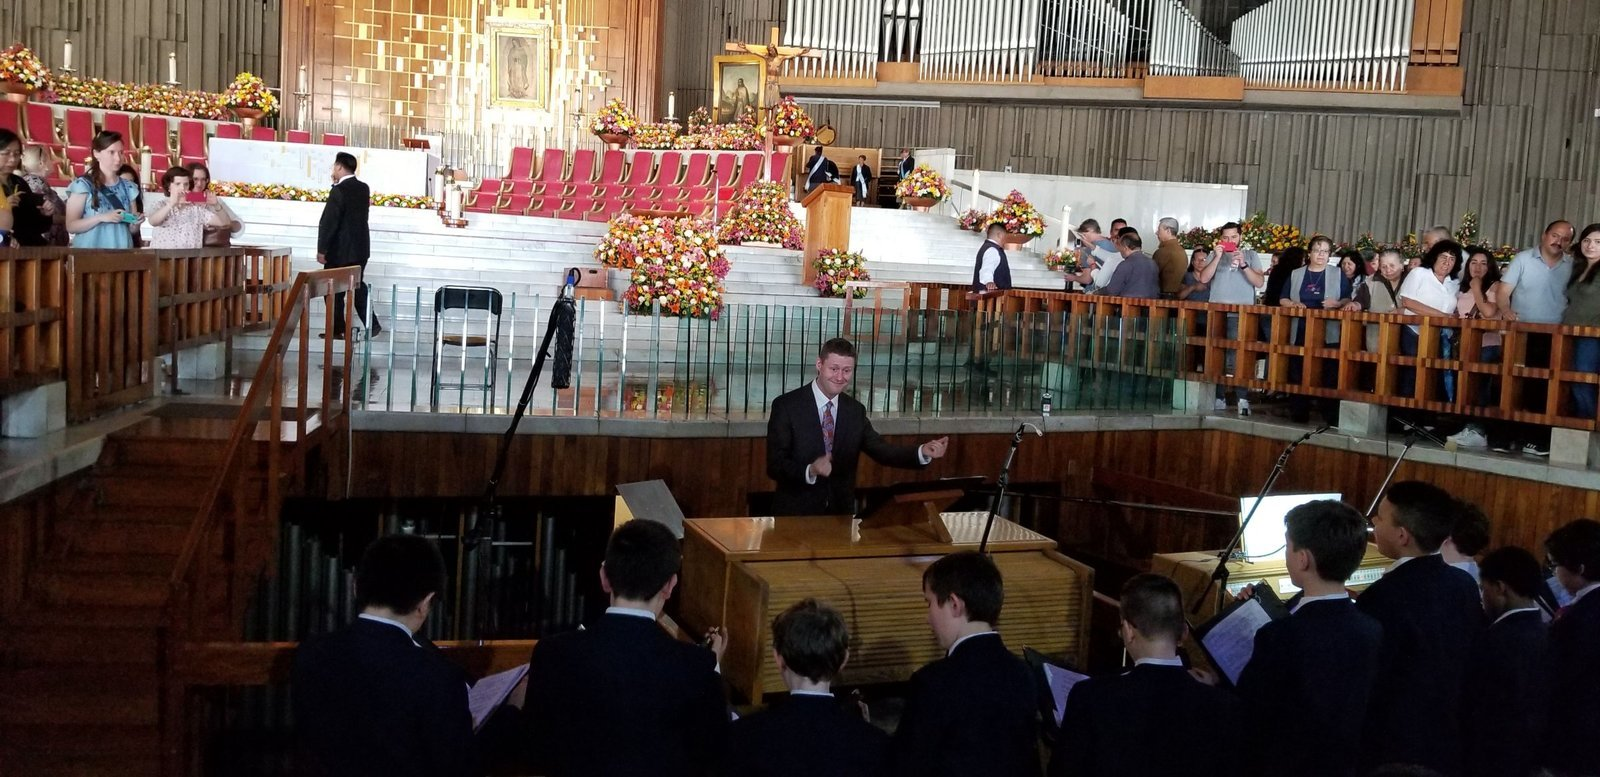 Image: Boy Choristers of Saint Paul's sing the Mass before the tilma bearing the image of Our Lady of Guadalupe.